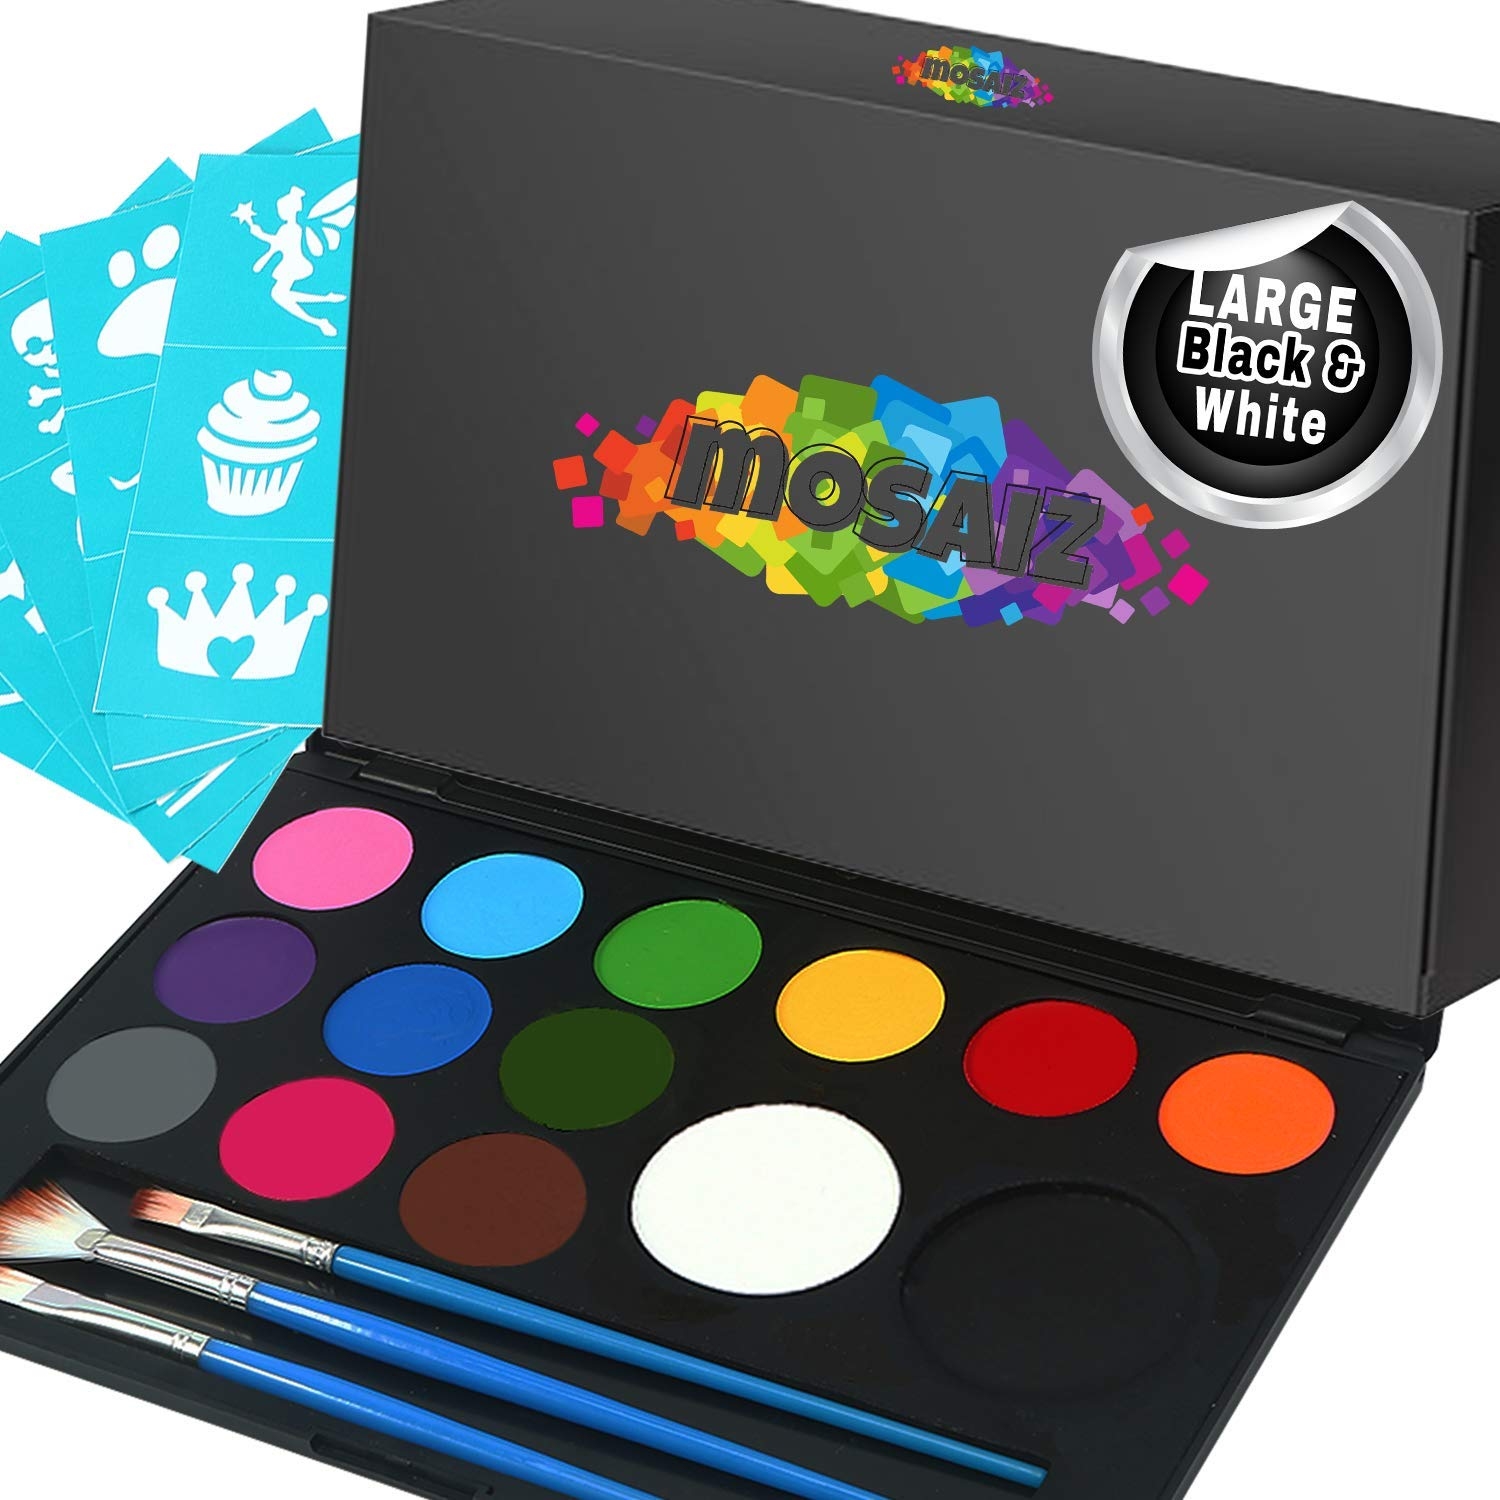 Face Paint Kit Non-Grease 14 Colors with Large Black and White, 3 Brushes, 30 Stencils Water-Based Face and Body Paints Kit for Kids or Professional - Safe Facepainting for Sensitive Skin